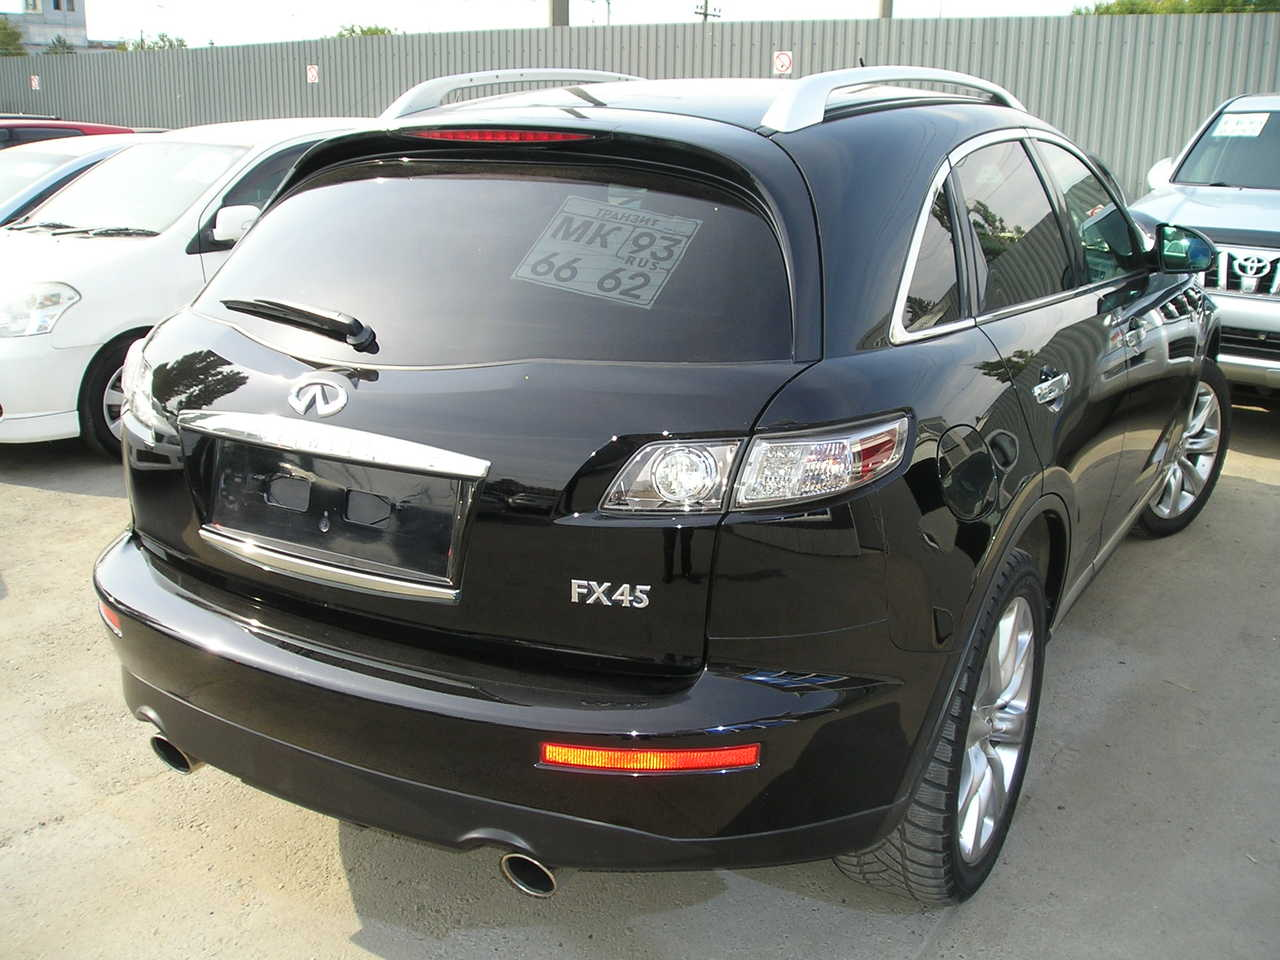 used 2007 infiniti fx45 photos gasoline automatic for sale. Black Bedroom Furniture Sets. Home Design Ideas